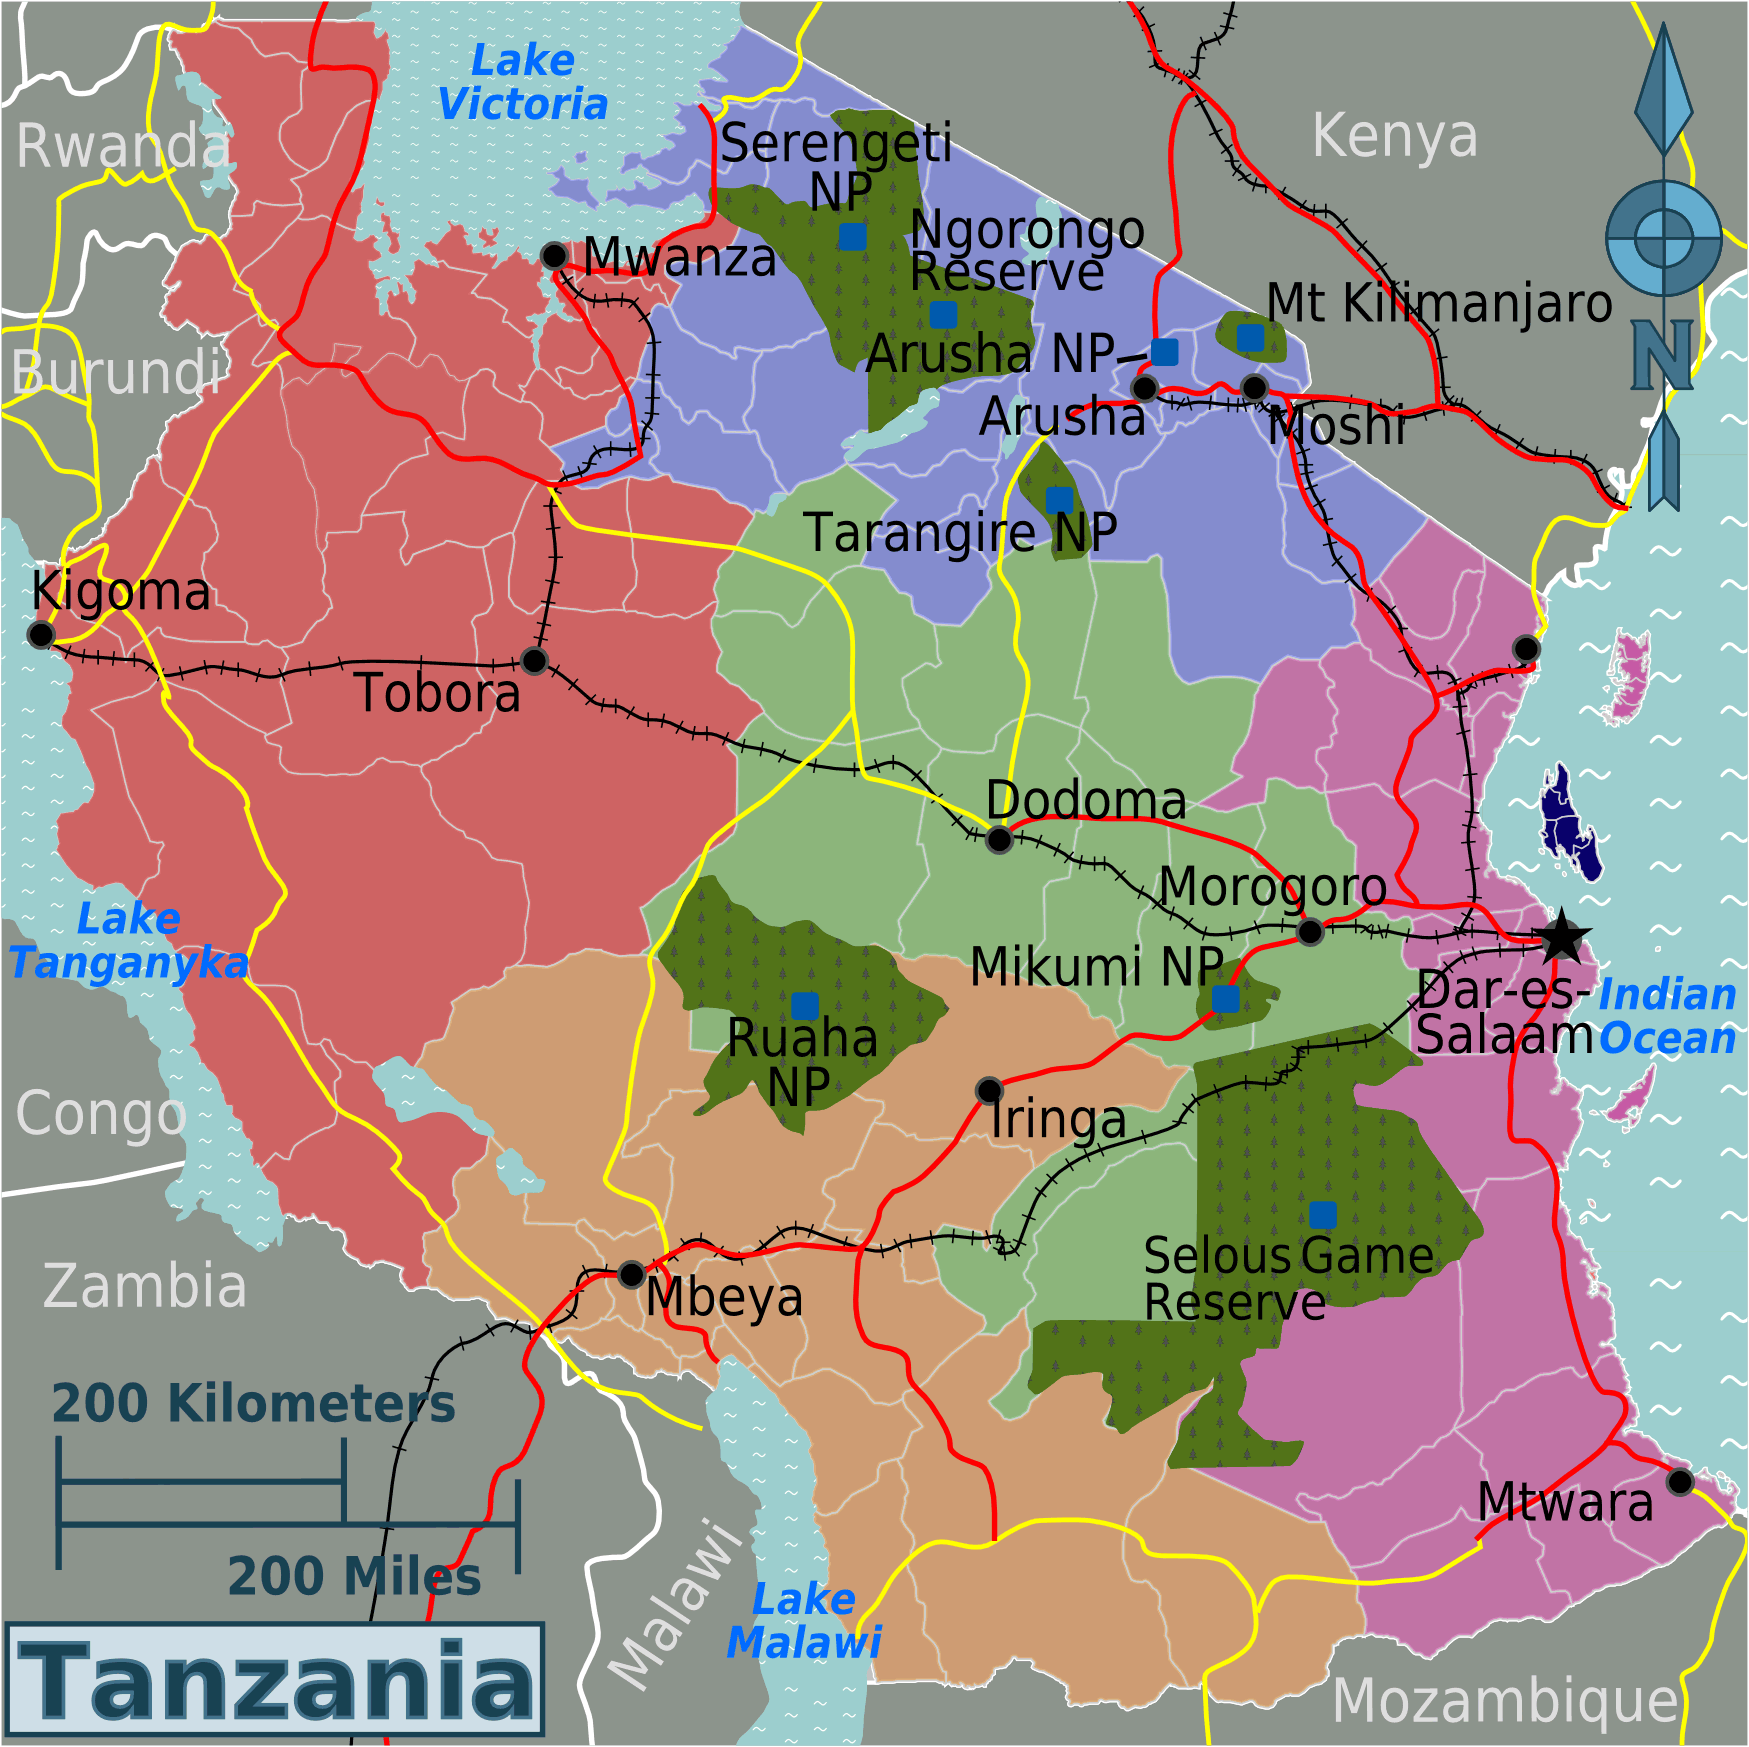 Tanzania Regions Map • Mapsof net